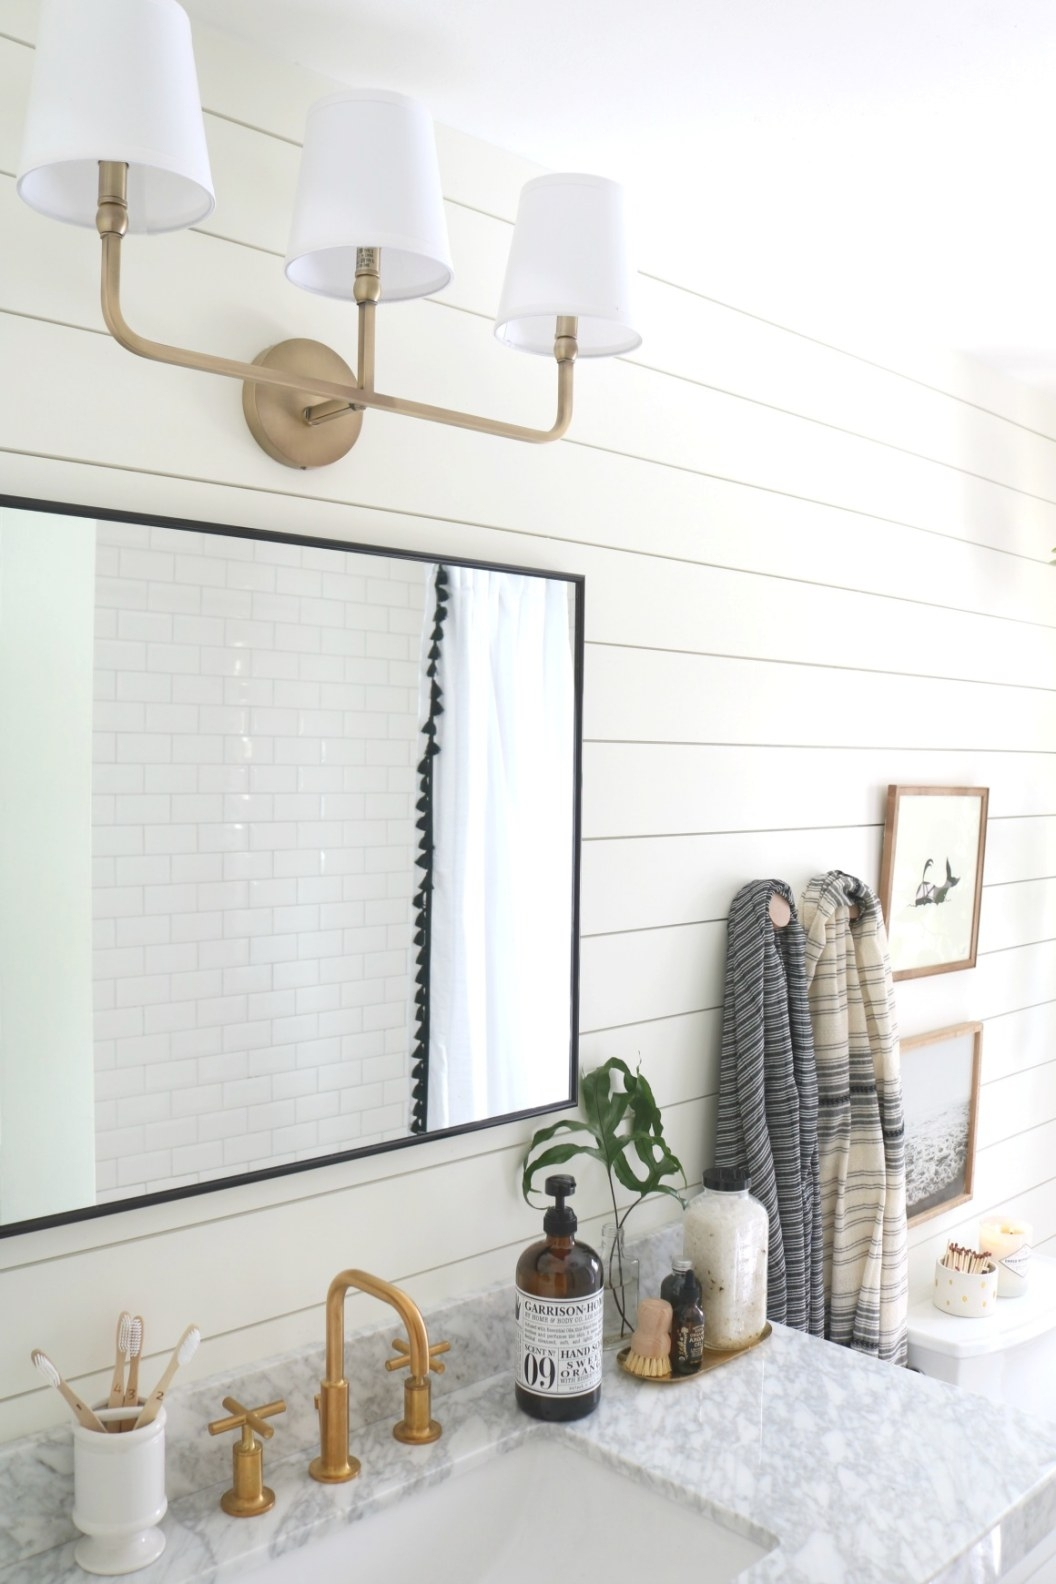 Upstairs Bathroom Remodel- The Reveal! - Nesting With Grace pertaining to How To Remodel Bathrooms